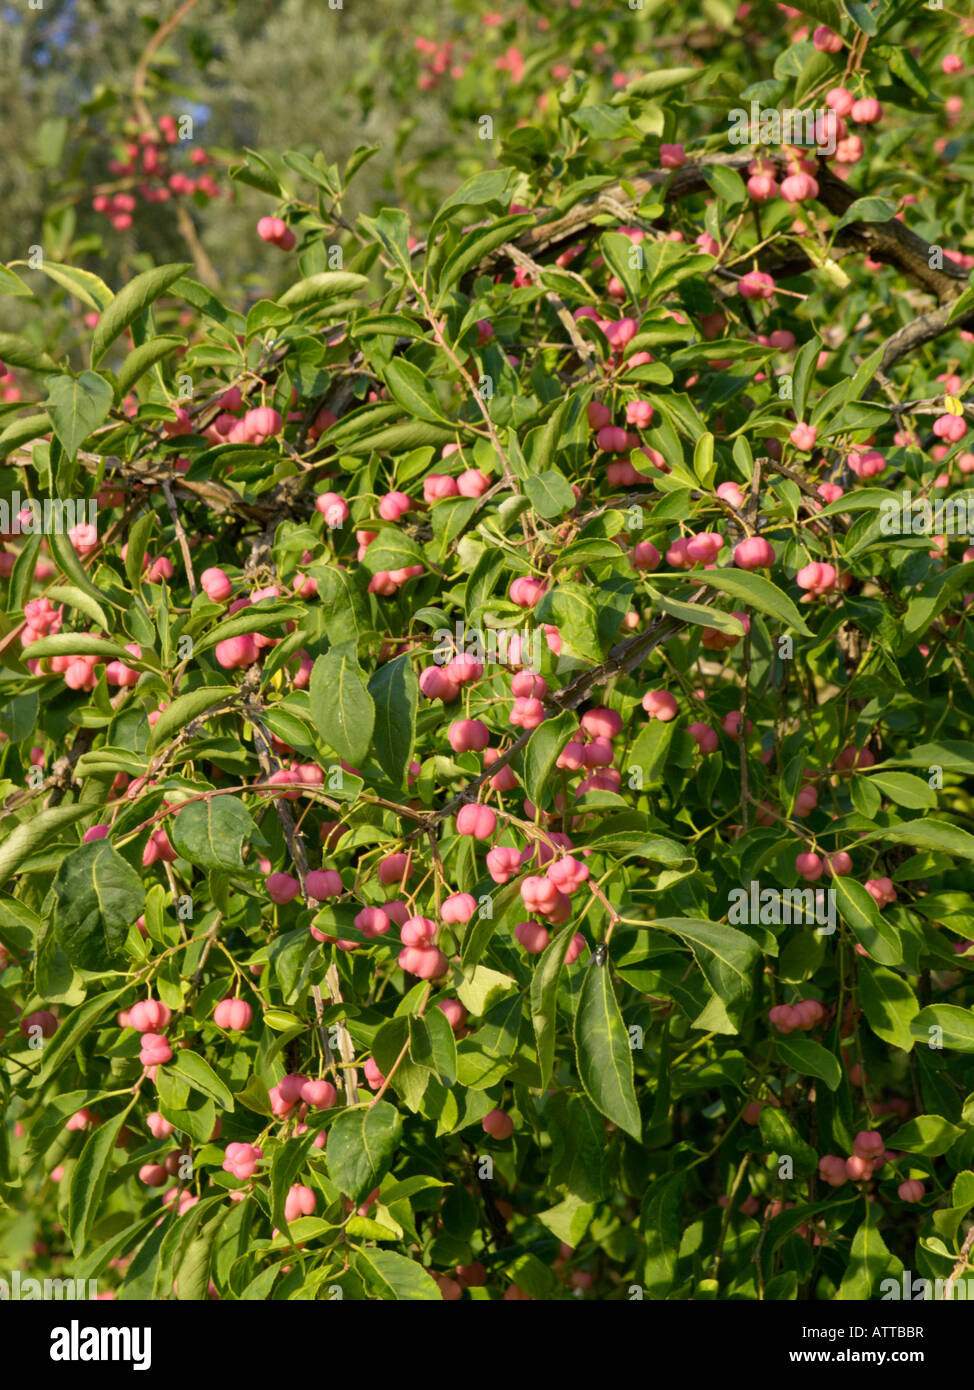 euonymus alatus winged spindle tree stock photos. Black Bedroom Furniture Sets. Home Design Ideas